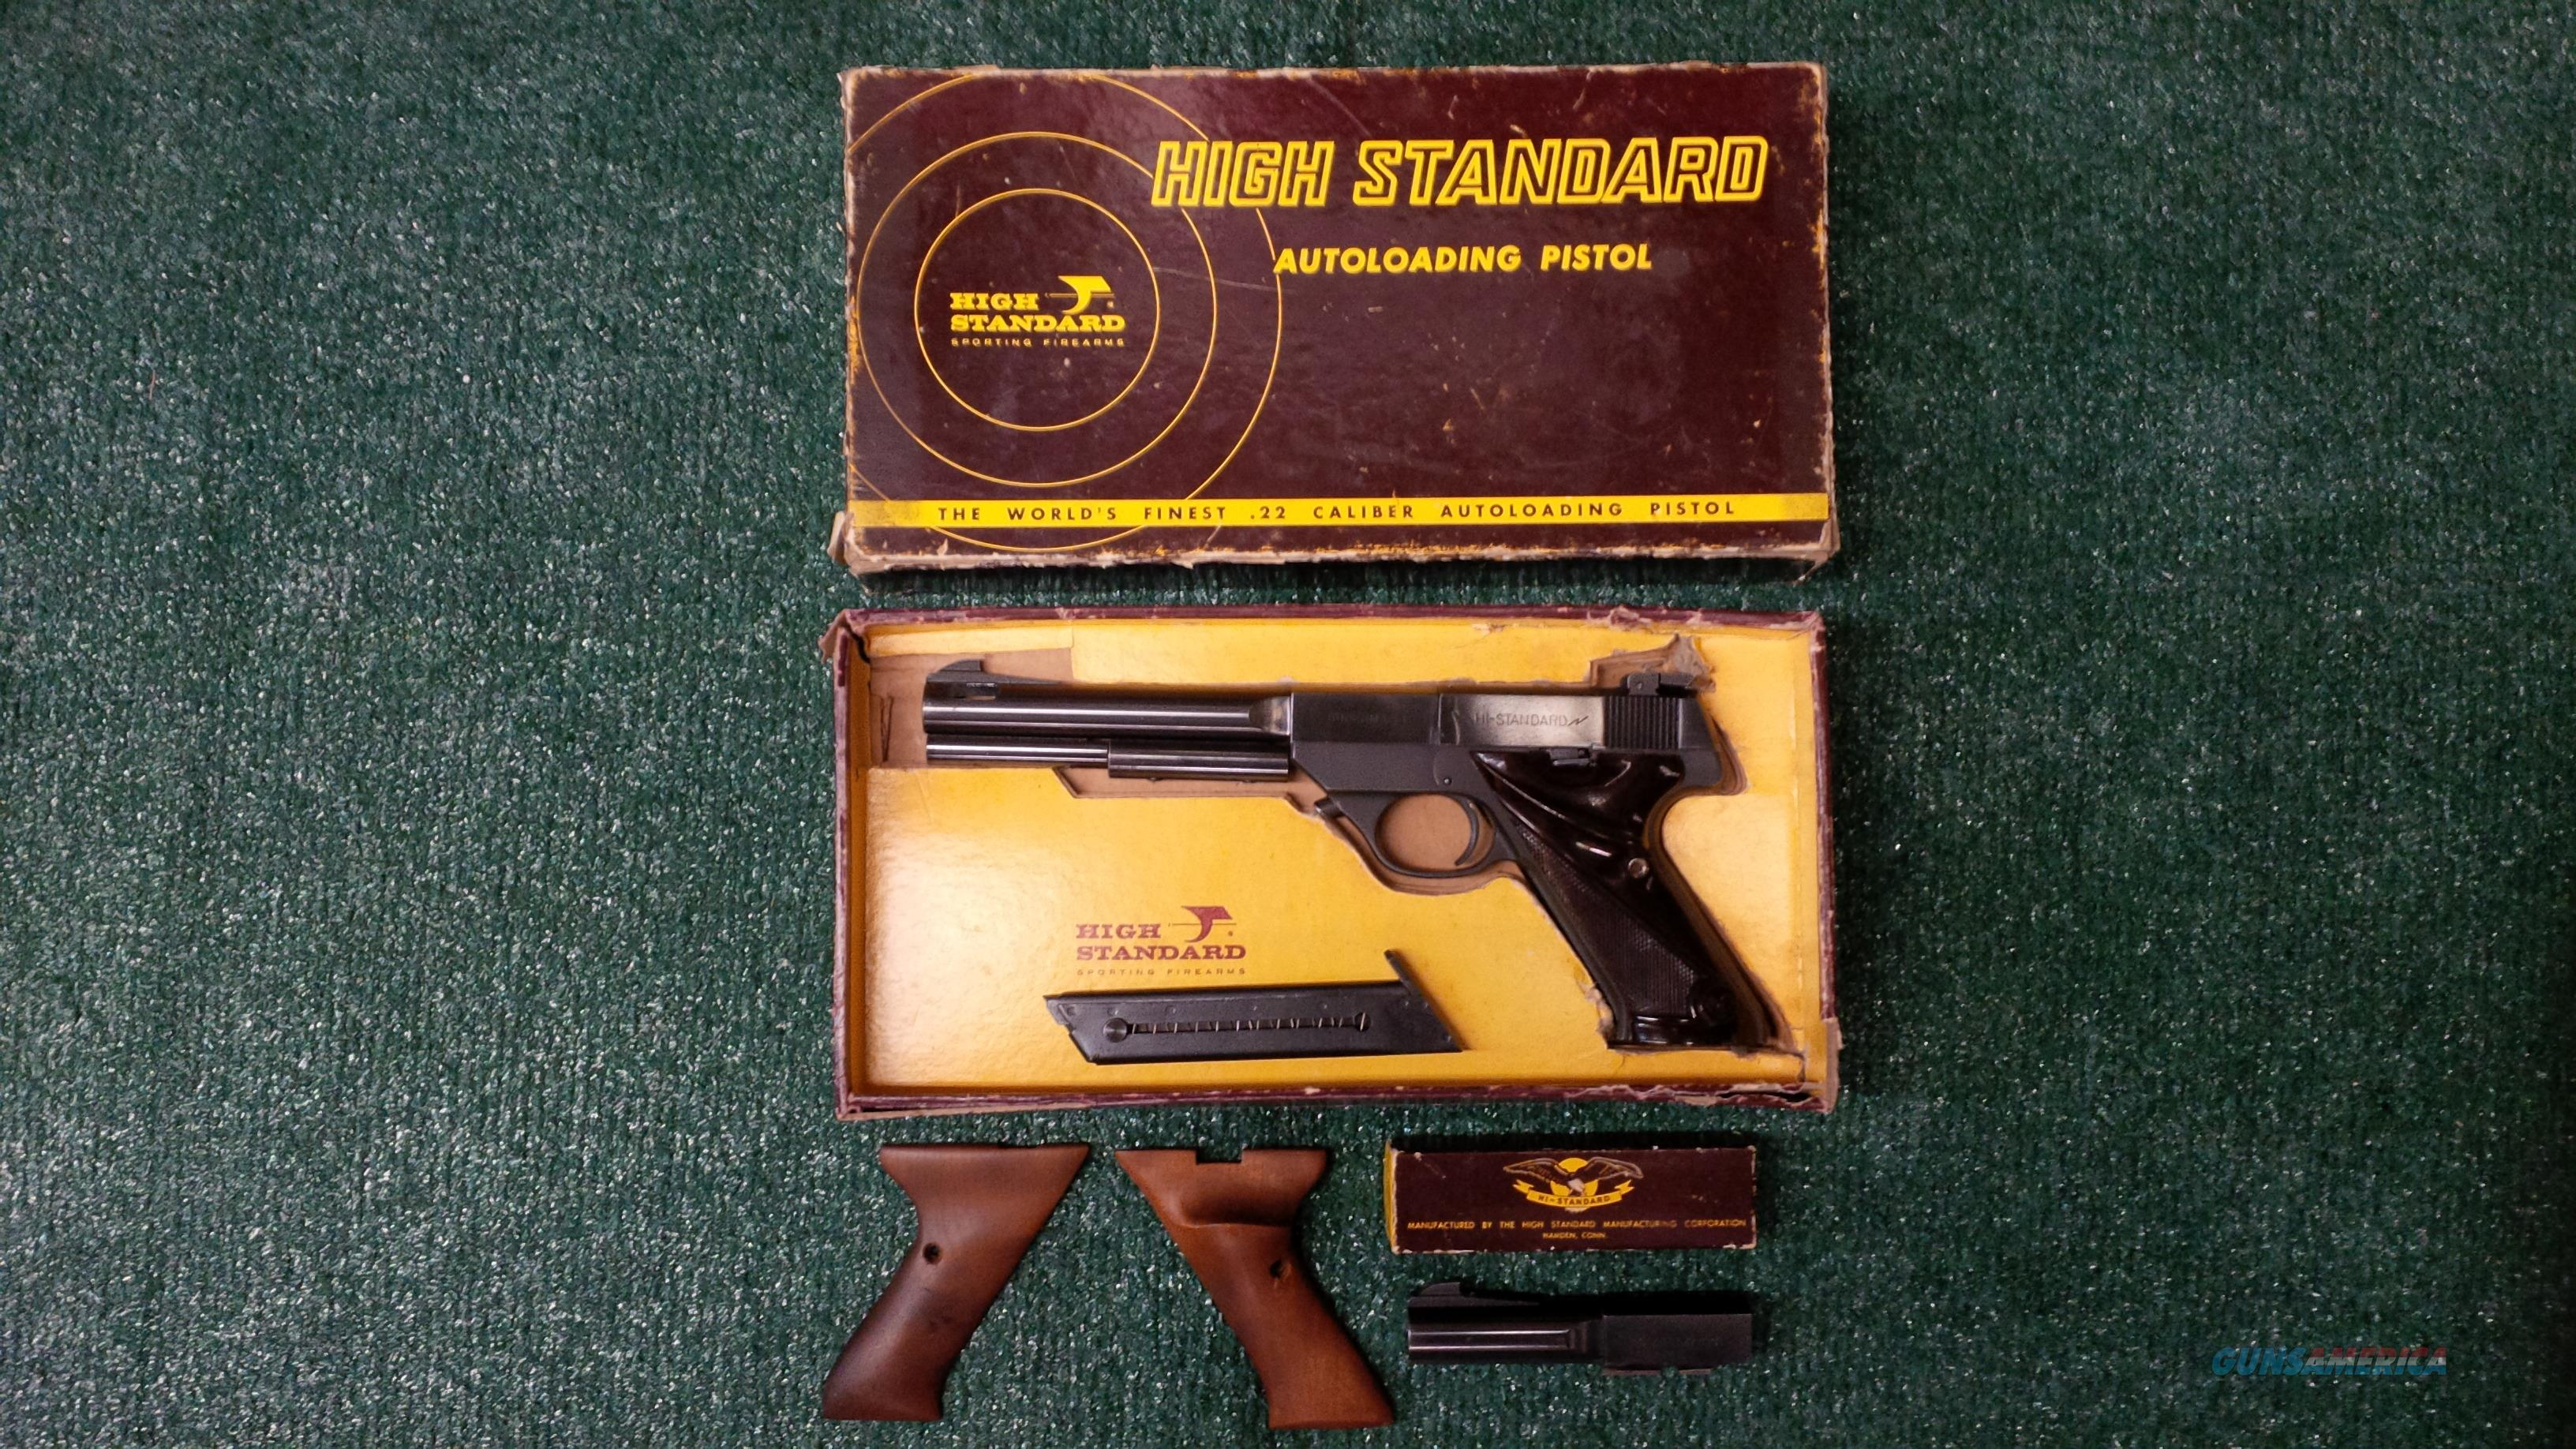 High Standard Supermatic S-101 .22lr Pistol PRICE REDUCED!!!  Guns > Pistols > High Standard Pistols